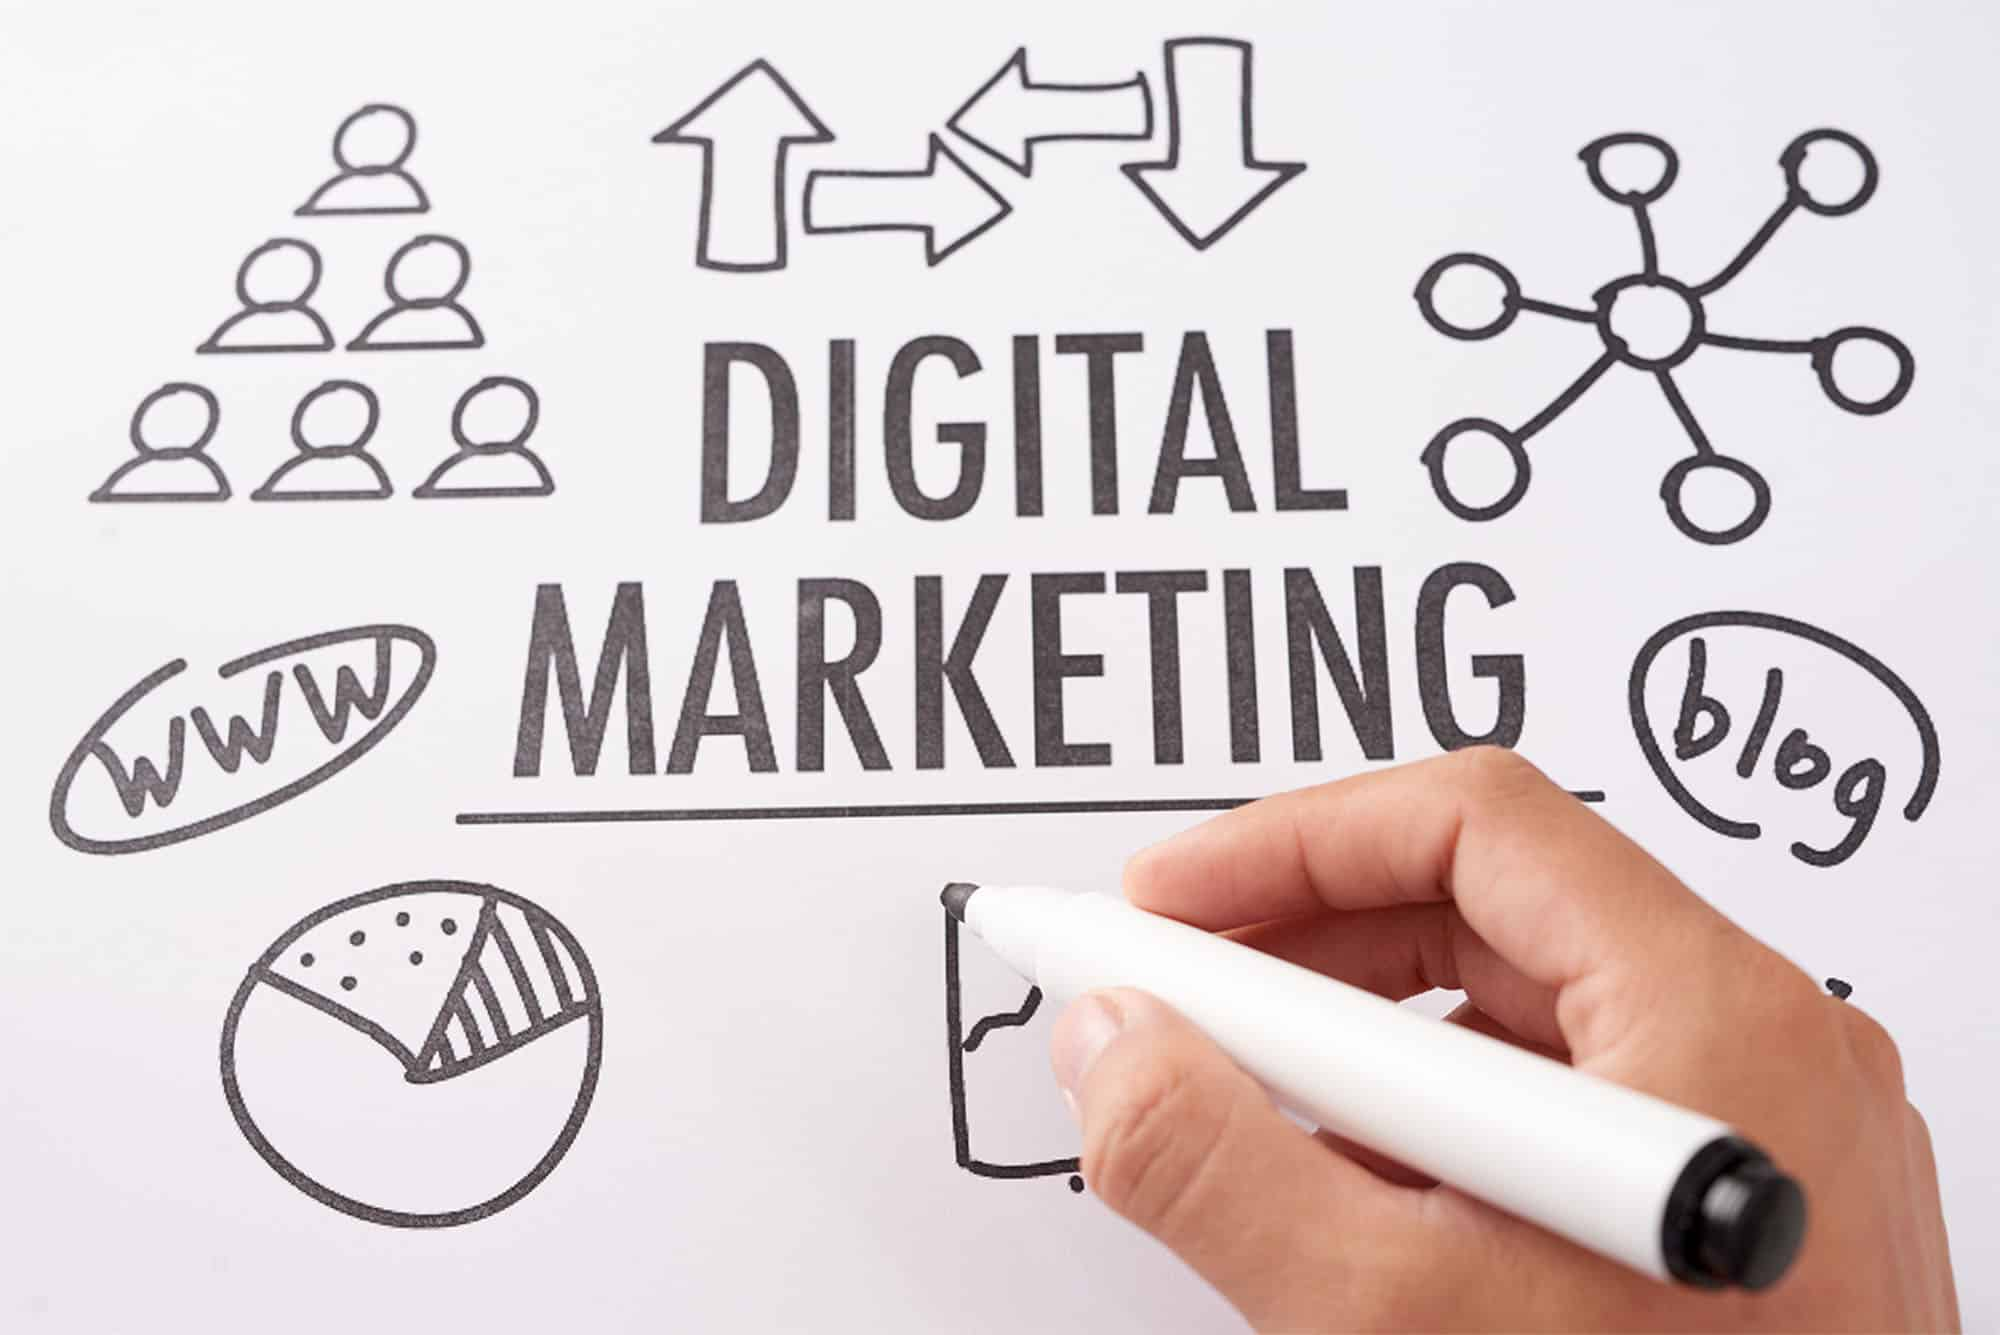 THE 2020 DIGITAL MARKETING GUIDE